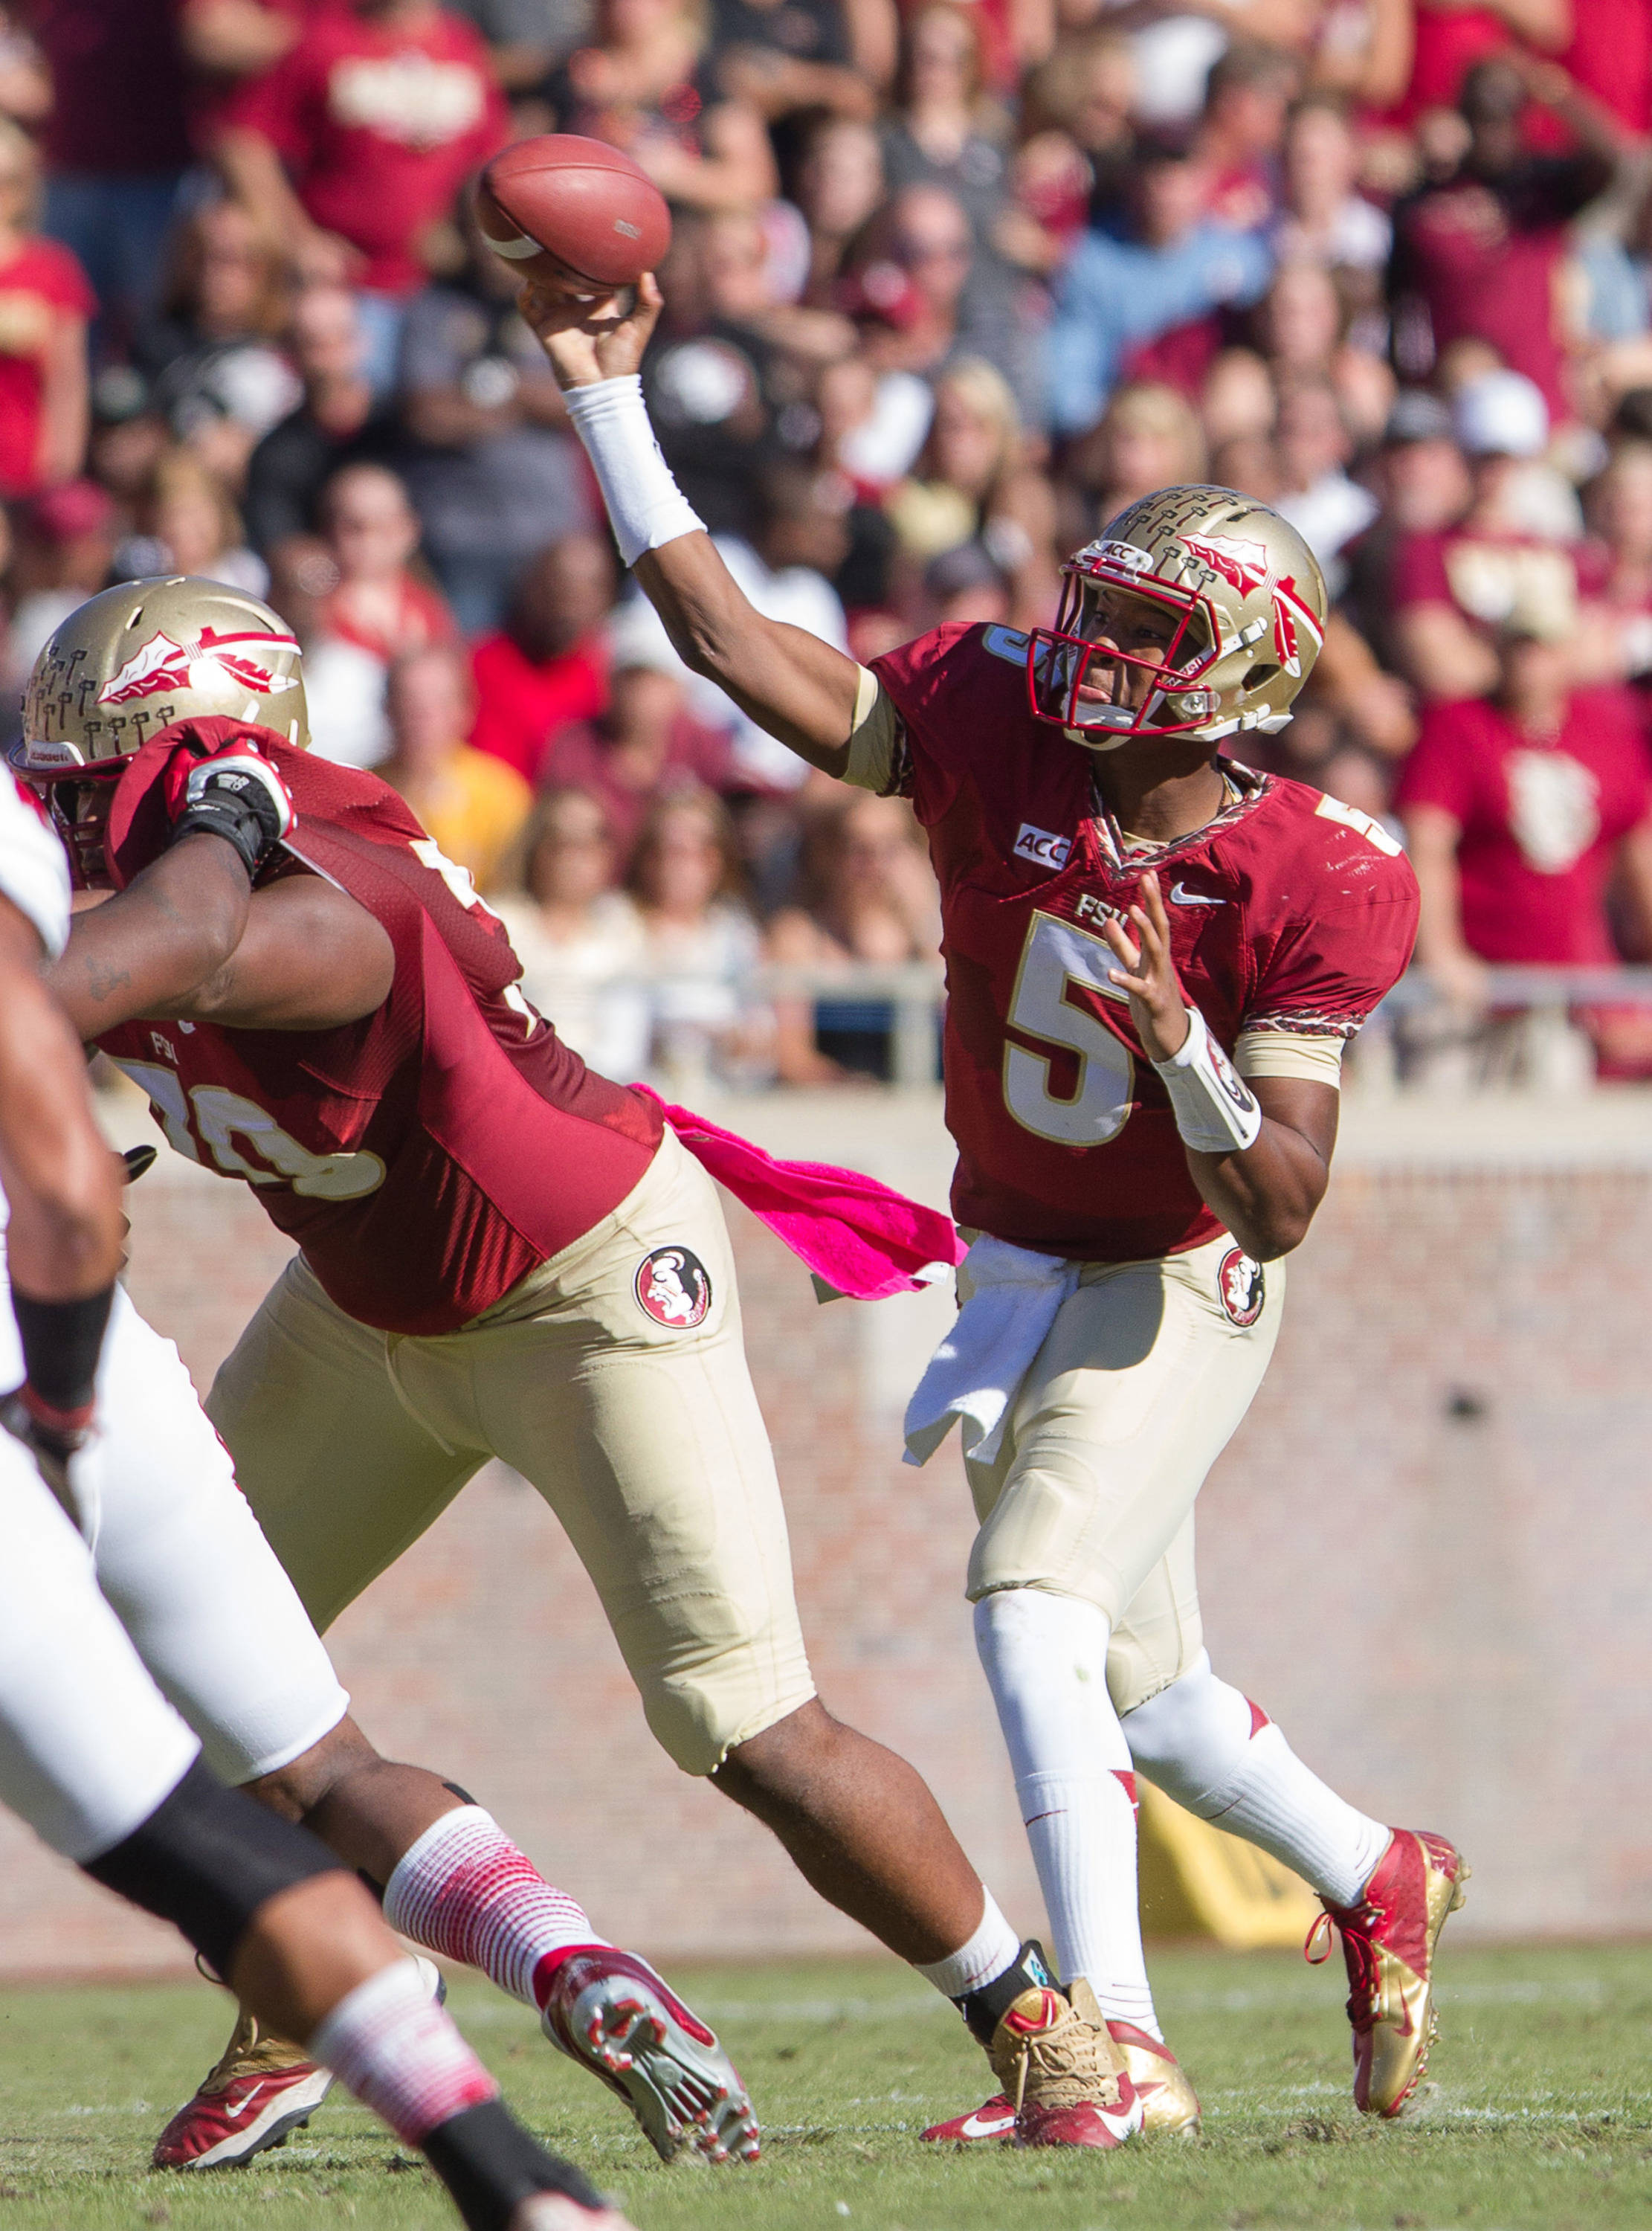 Jameis Winston (5) makes a pass during FSU Football's 49-17 win over NC State on Saturday, October 26, 2013 in Tallahassee, Fla. Photo by Michael Schwarz.